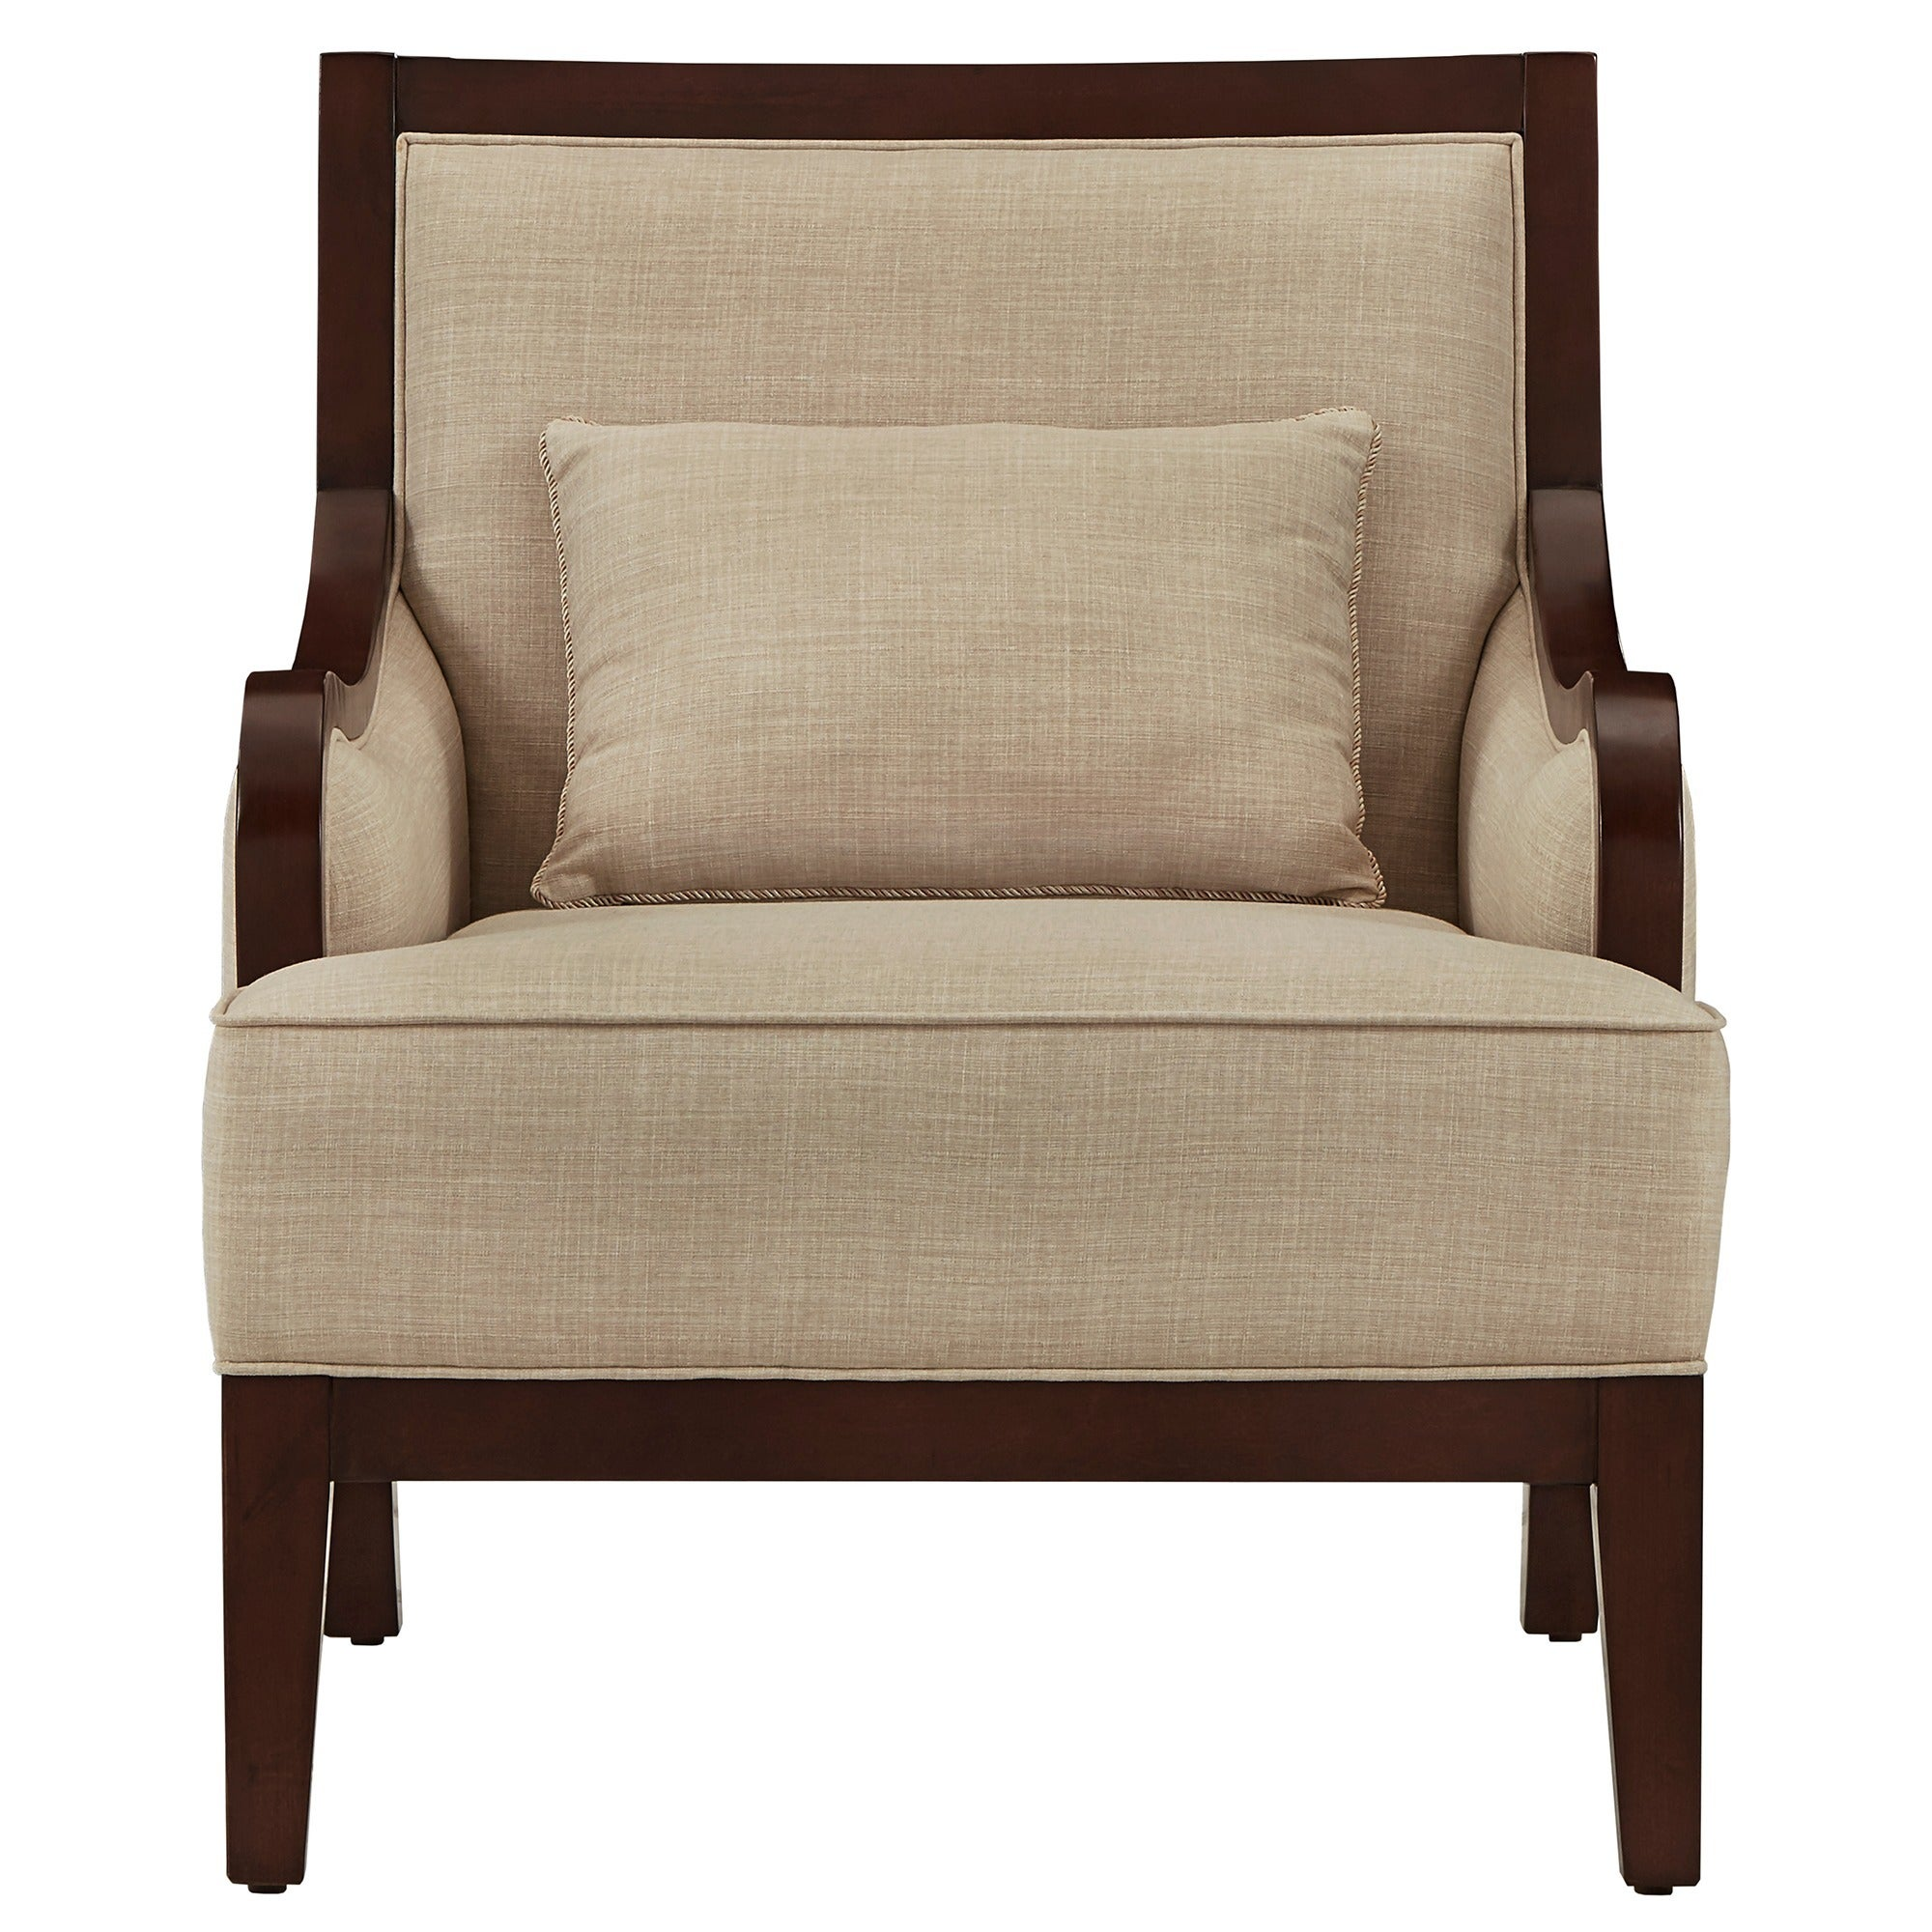 Good Brenda Espresso Wood Transitional Accent Chair By INSPIRE Q Classic   Free  Shipping Today   Overstock   23594561